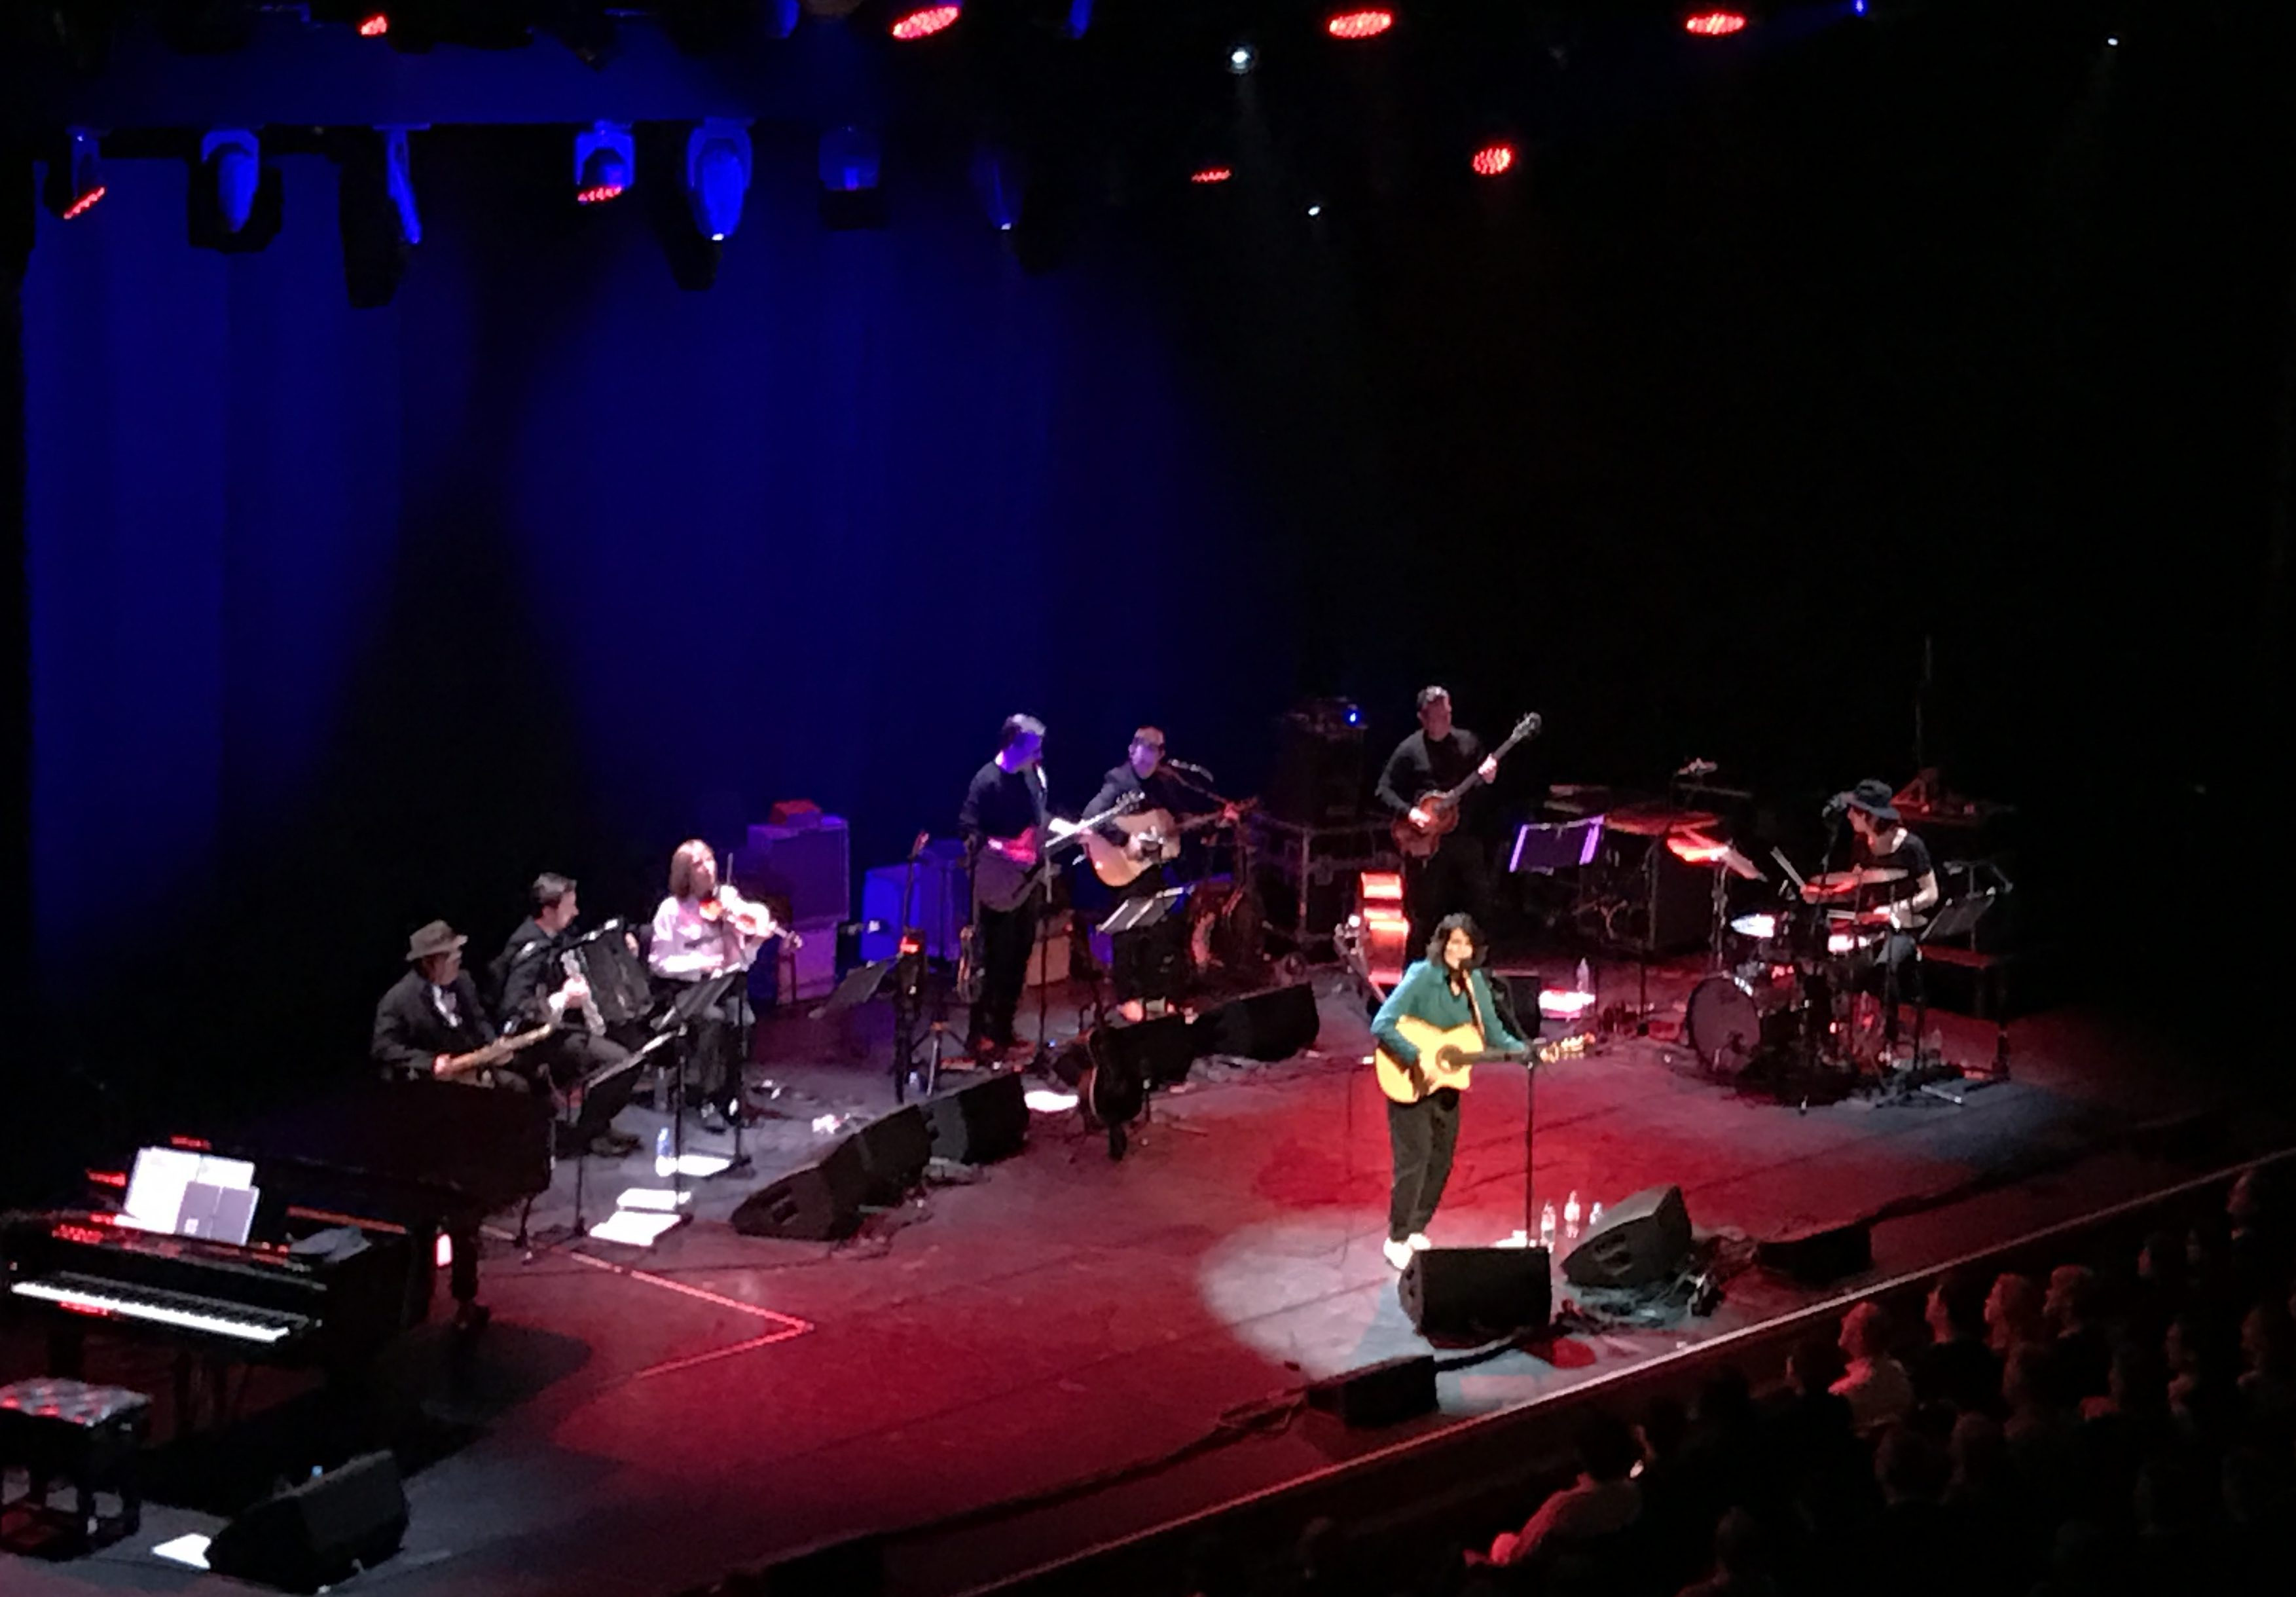 Tanita Tikaram / Live on stage at the Barbican Centre 24/2/17